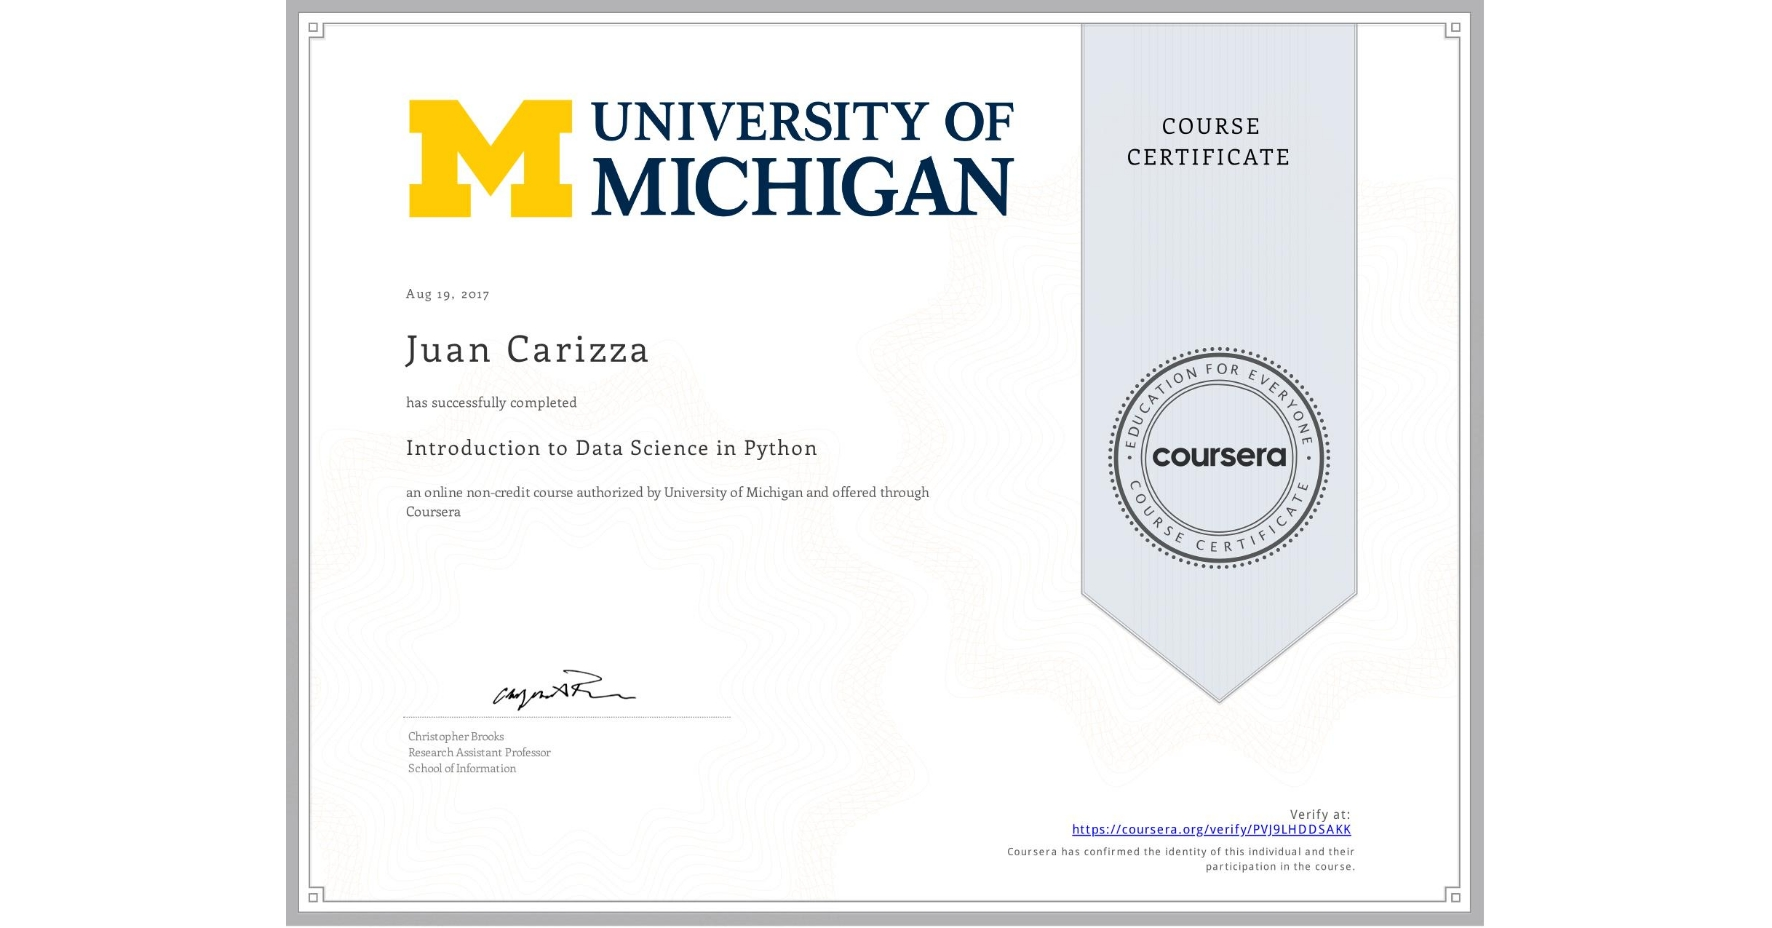 View certificate for Juan Carizza, Introduction to Data Science in Python, an online non-credit course authorized by University of Michigan and offered through Coursera